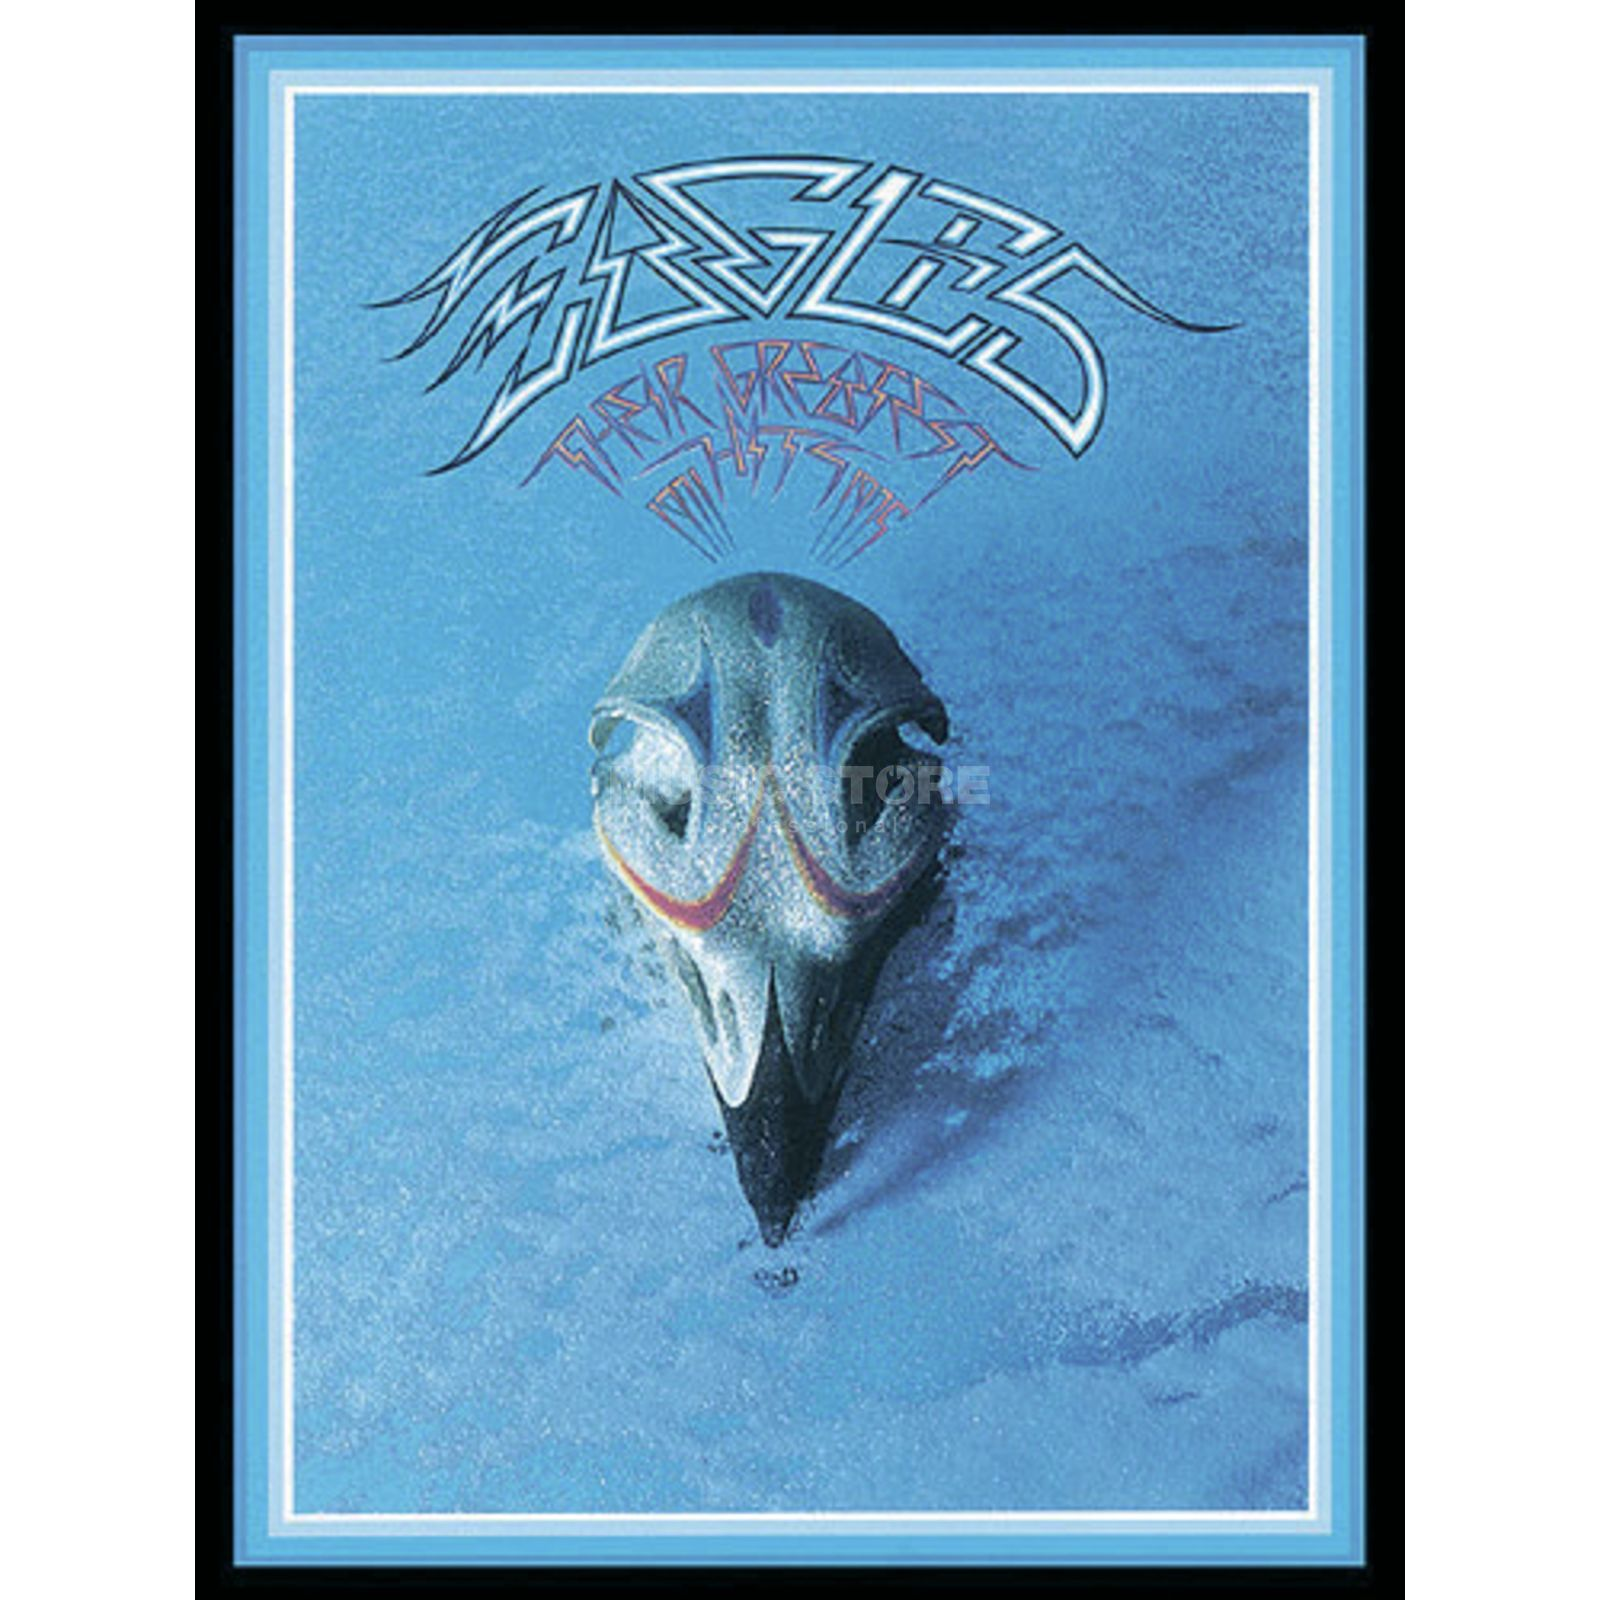 Alfred Music Eagles - Greatest Hits 1971 - 1975 PVG Produktbillede